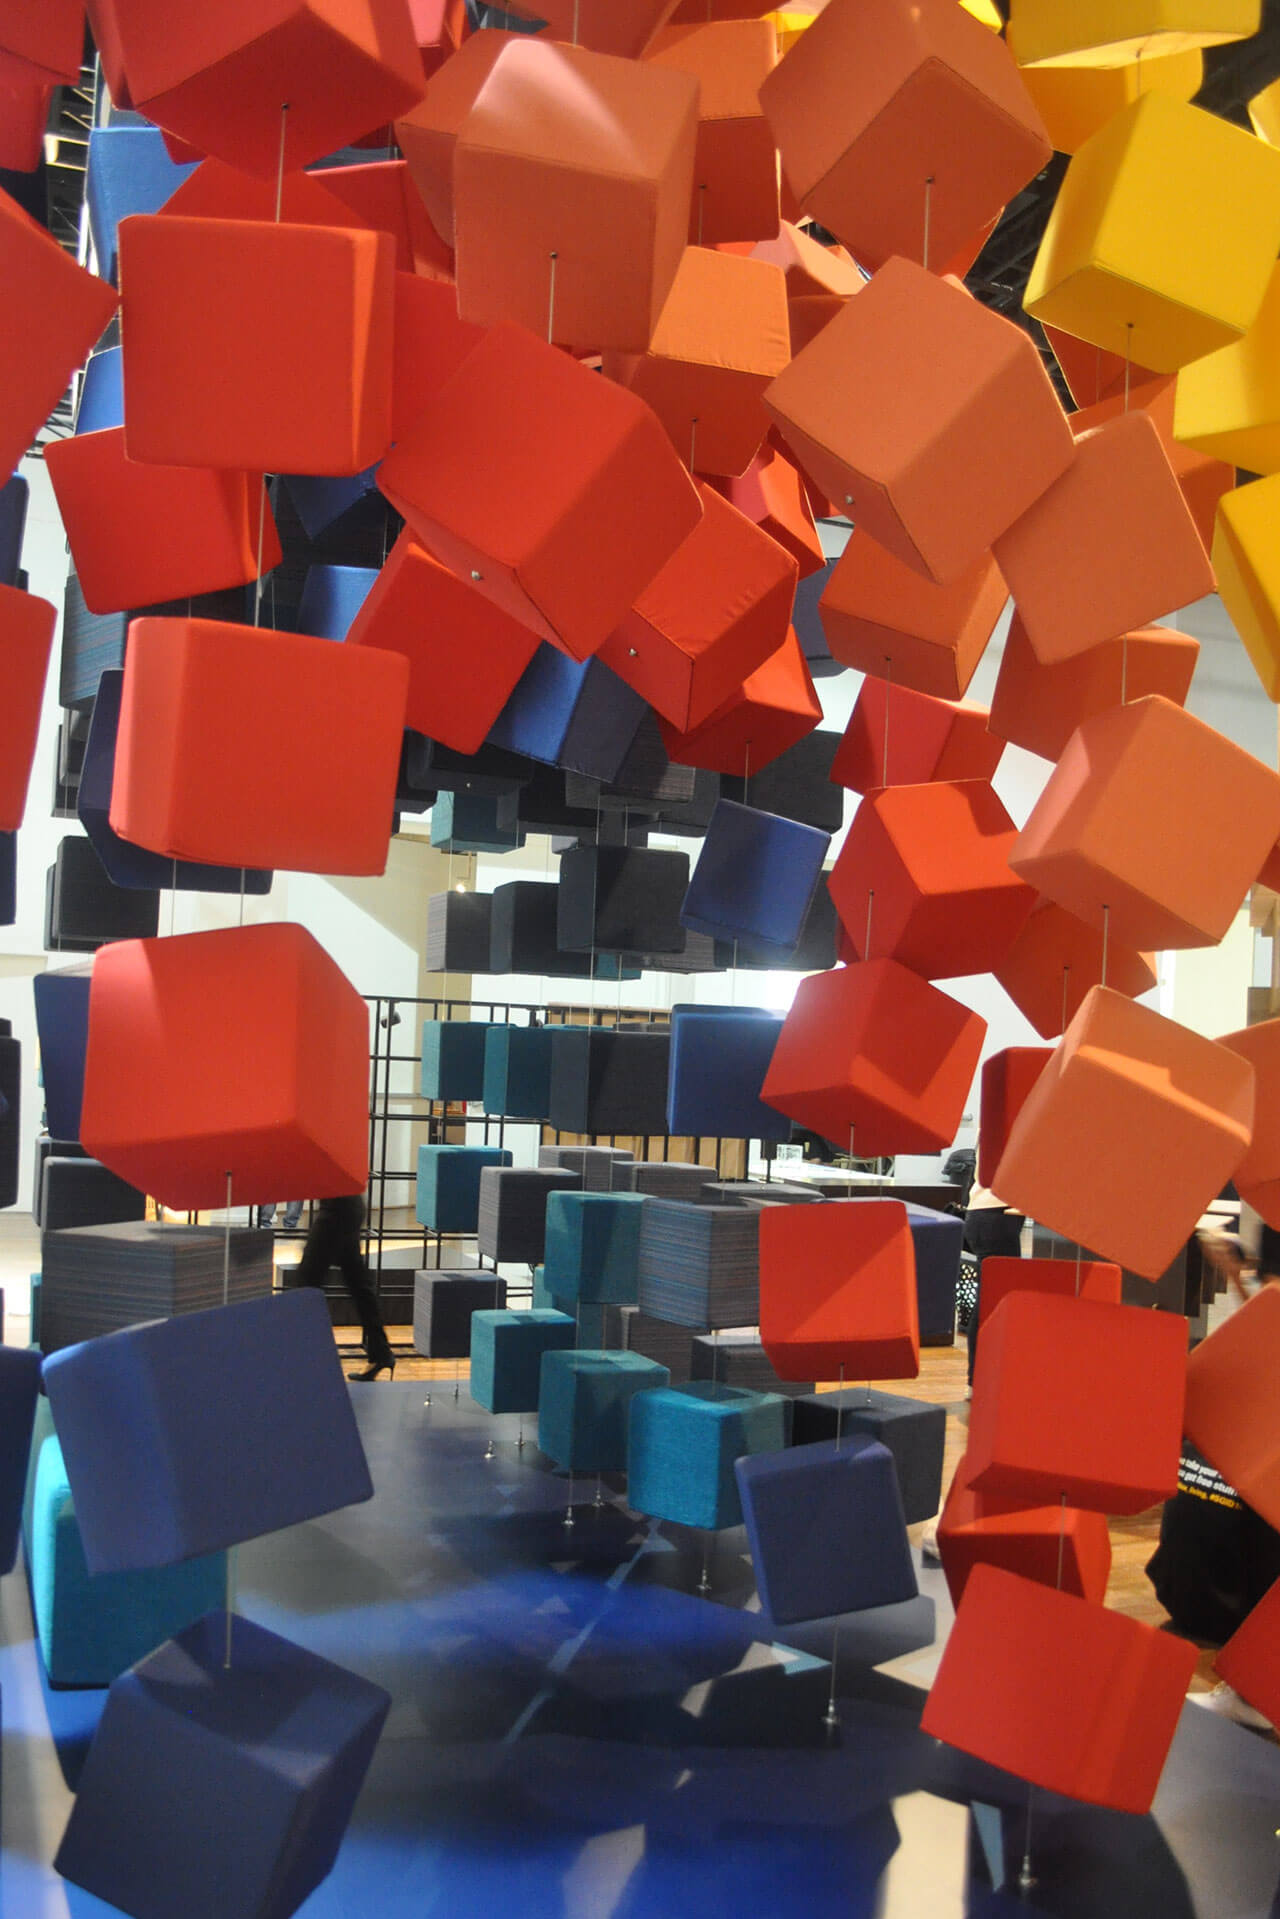 The Sunbrella Spectrum cubes create a tunnel for visitors to walk through and experience the fabrics.